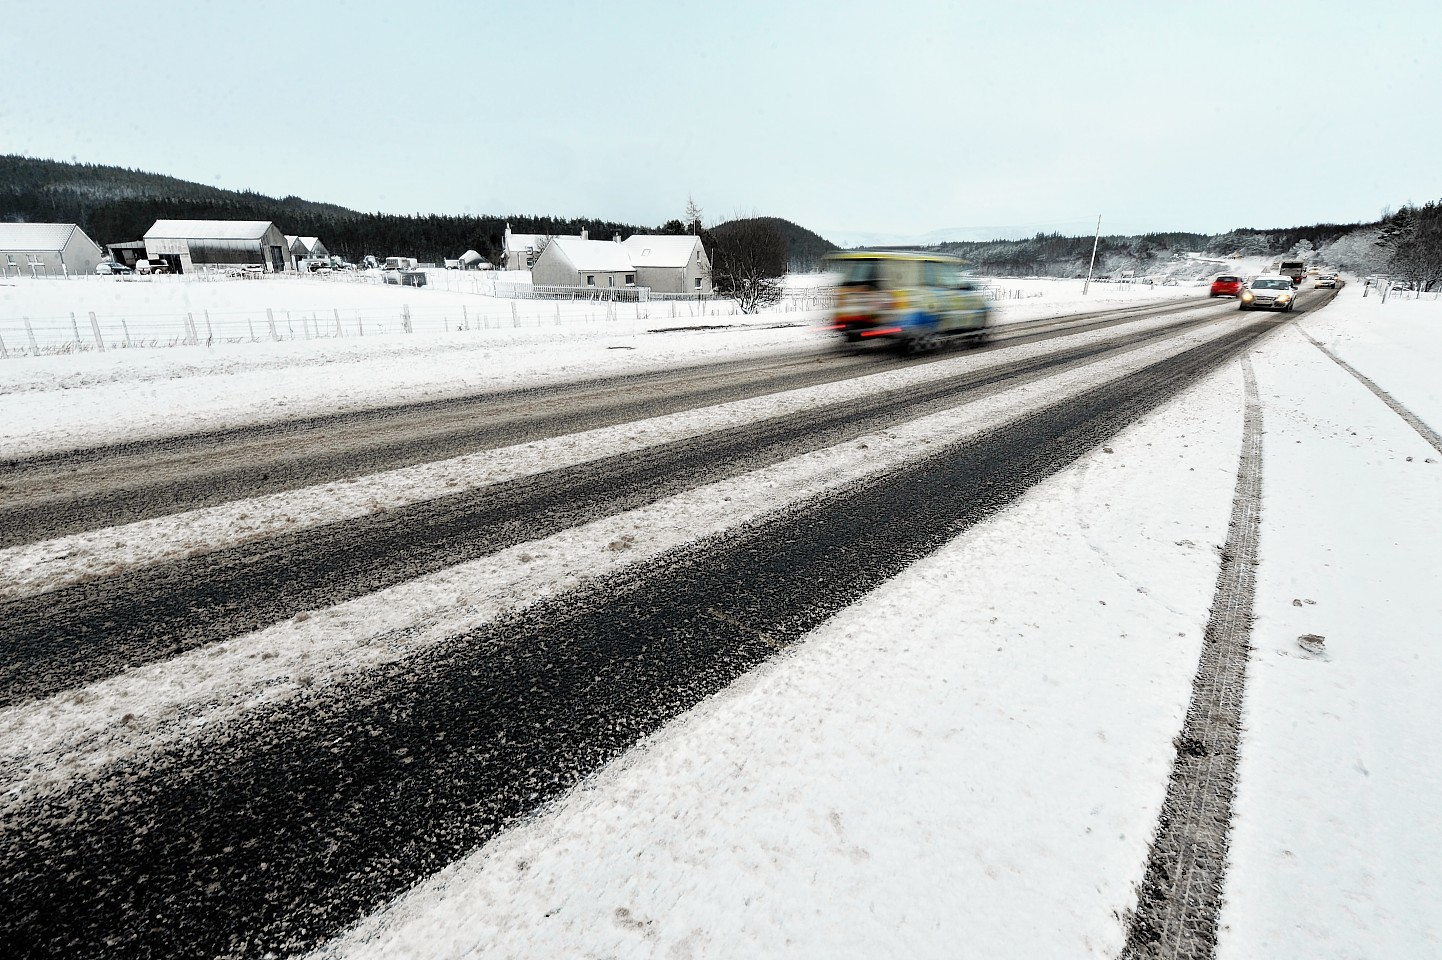 Snow lines the roads